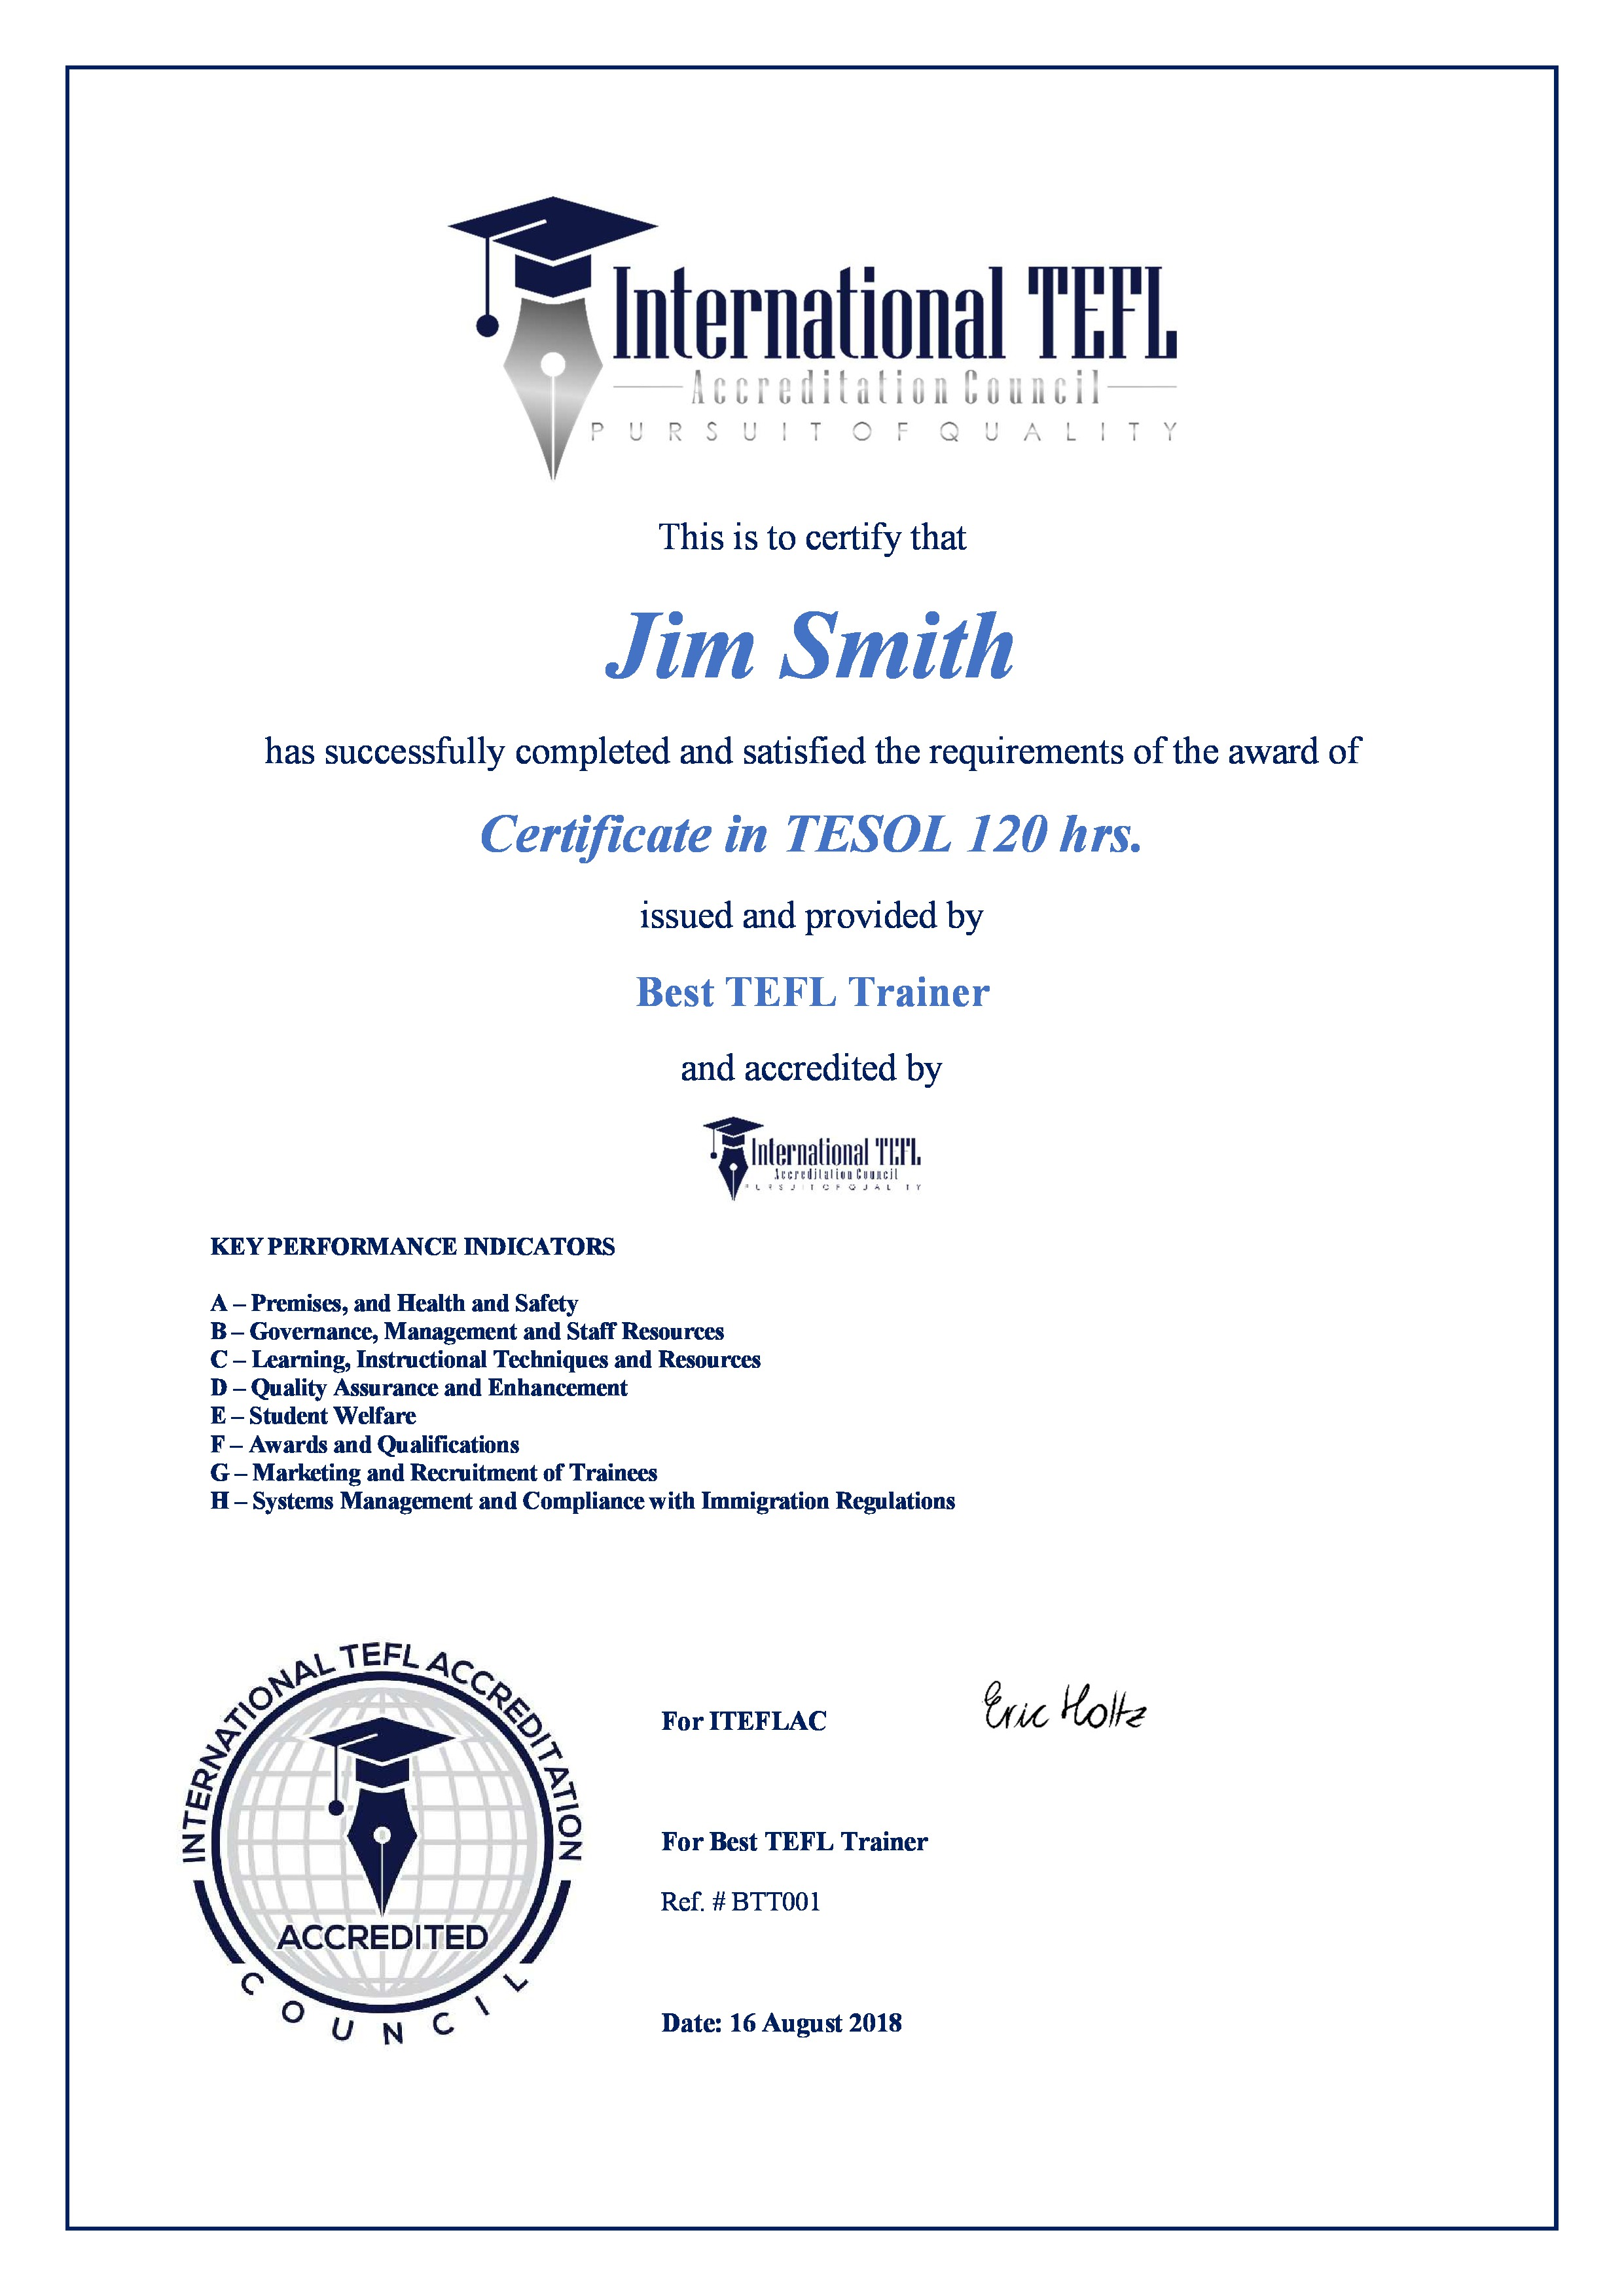 Image of an ITEFLAC student certificates